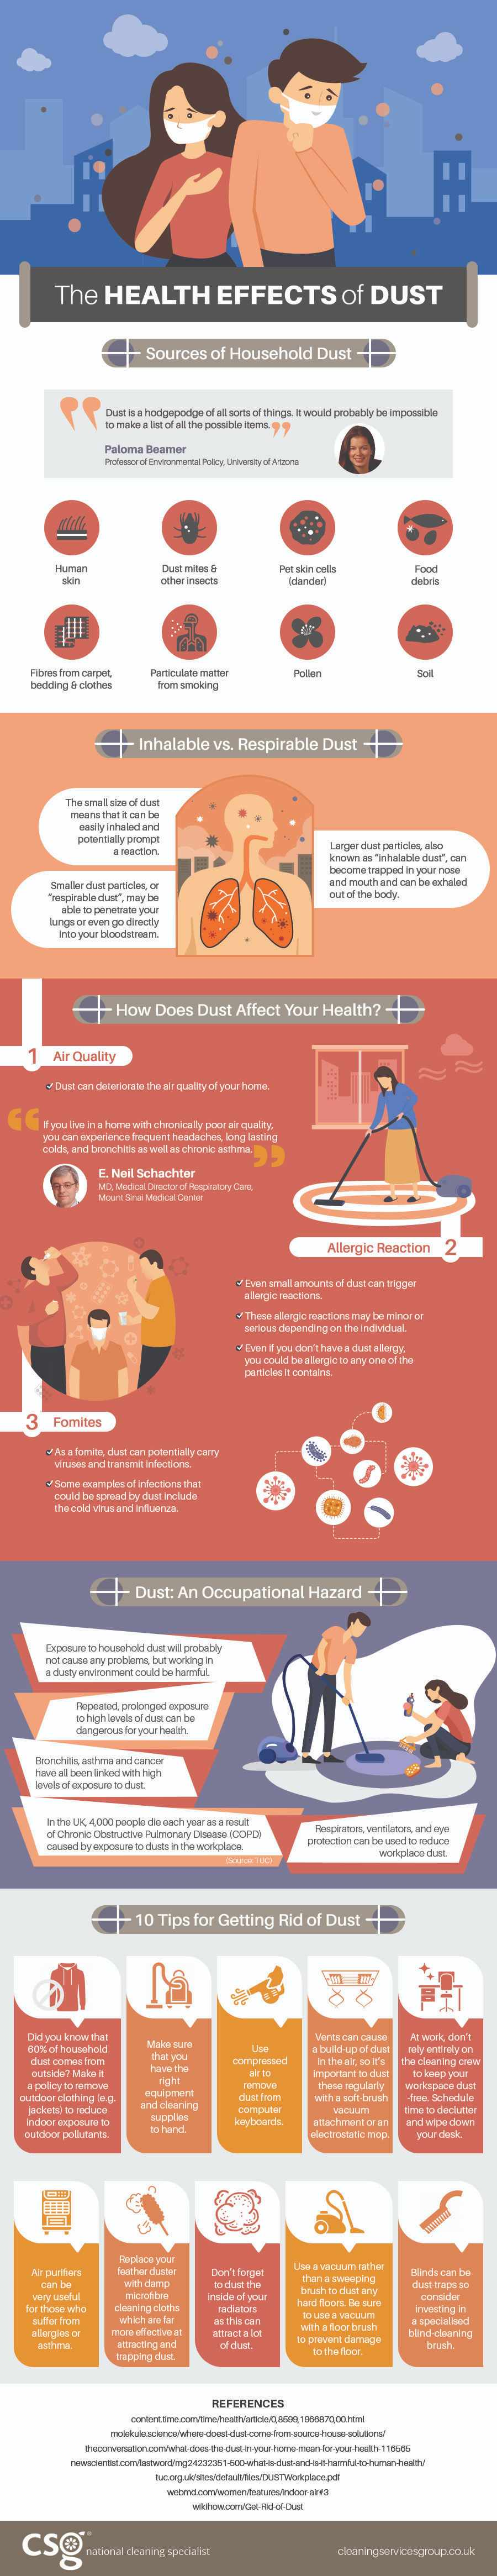 The-Health-Effects-of-Dust - Infographic